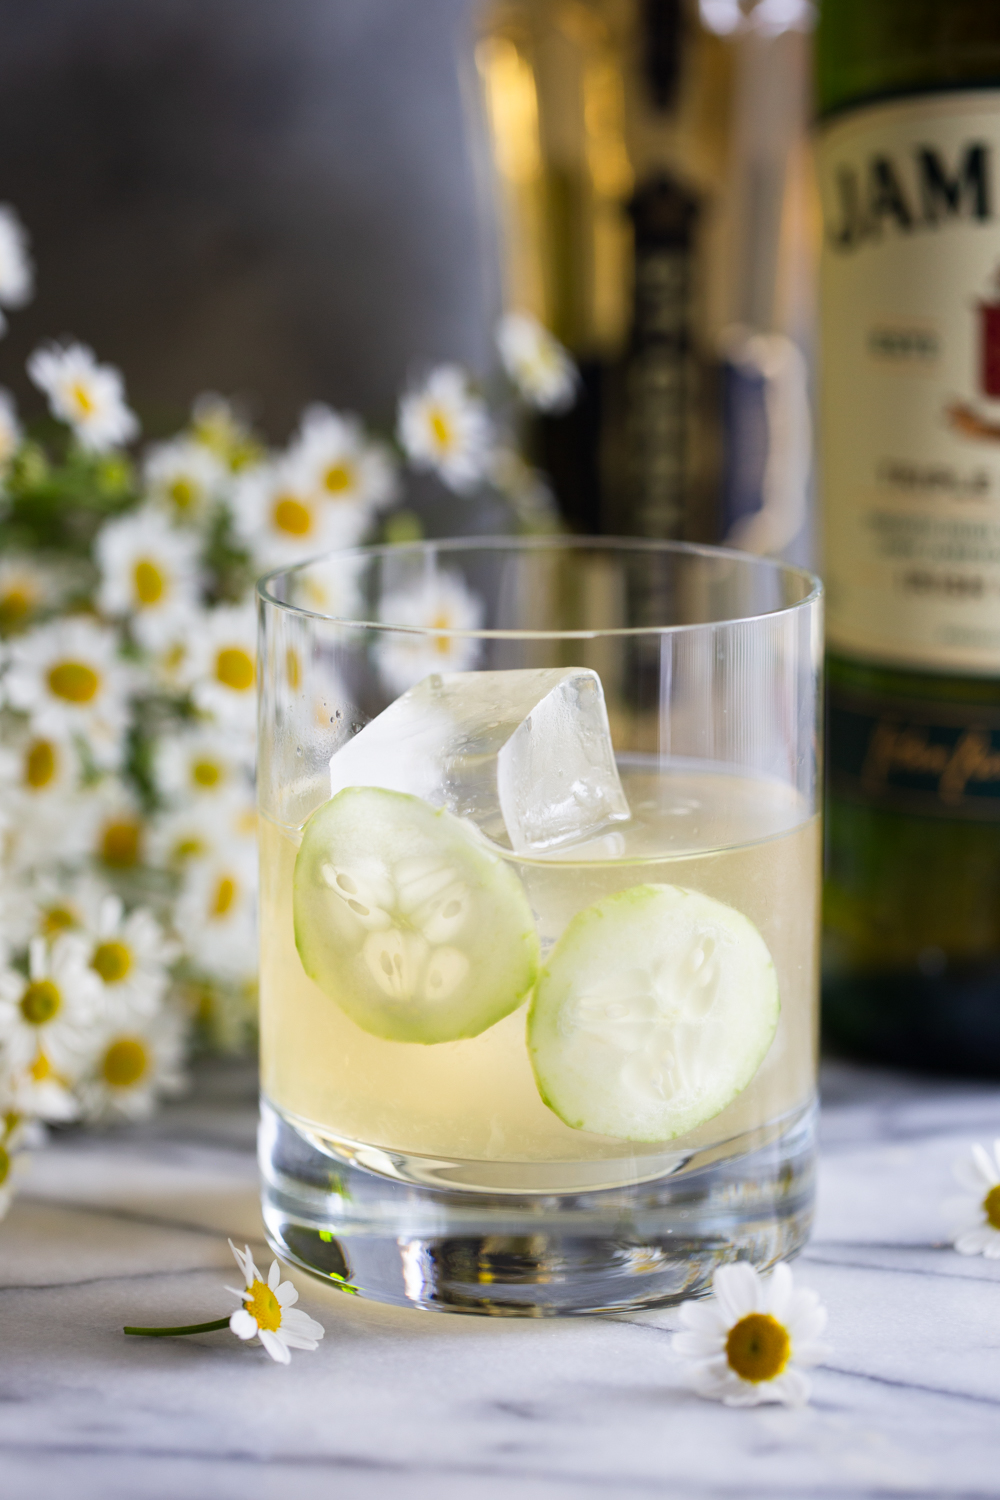 Irish maid cocktail with two cucumber slices for garnish